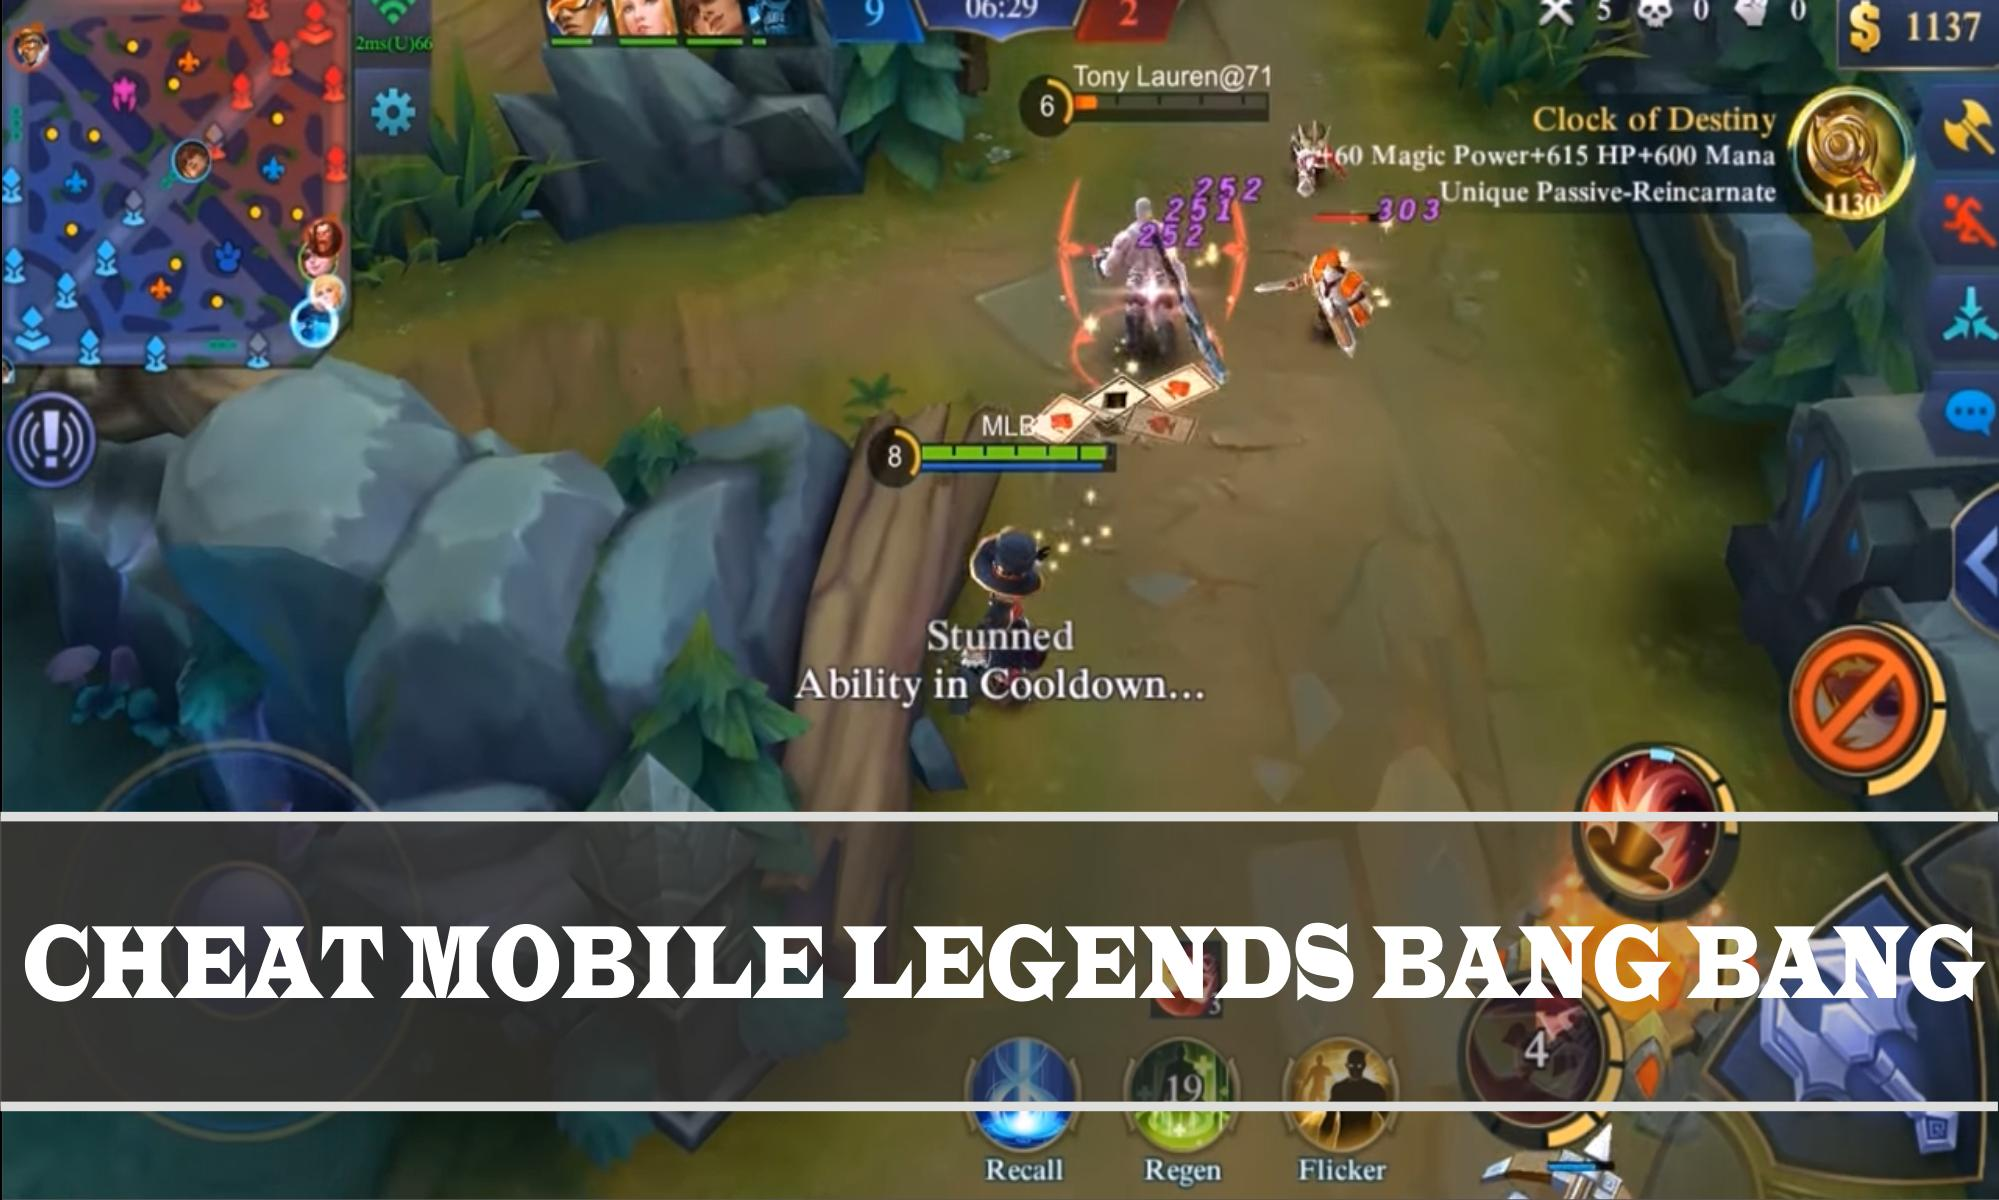 PRO Mobile Legends Bang Bang Cheat for Android - APK Download